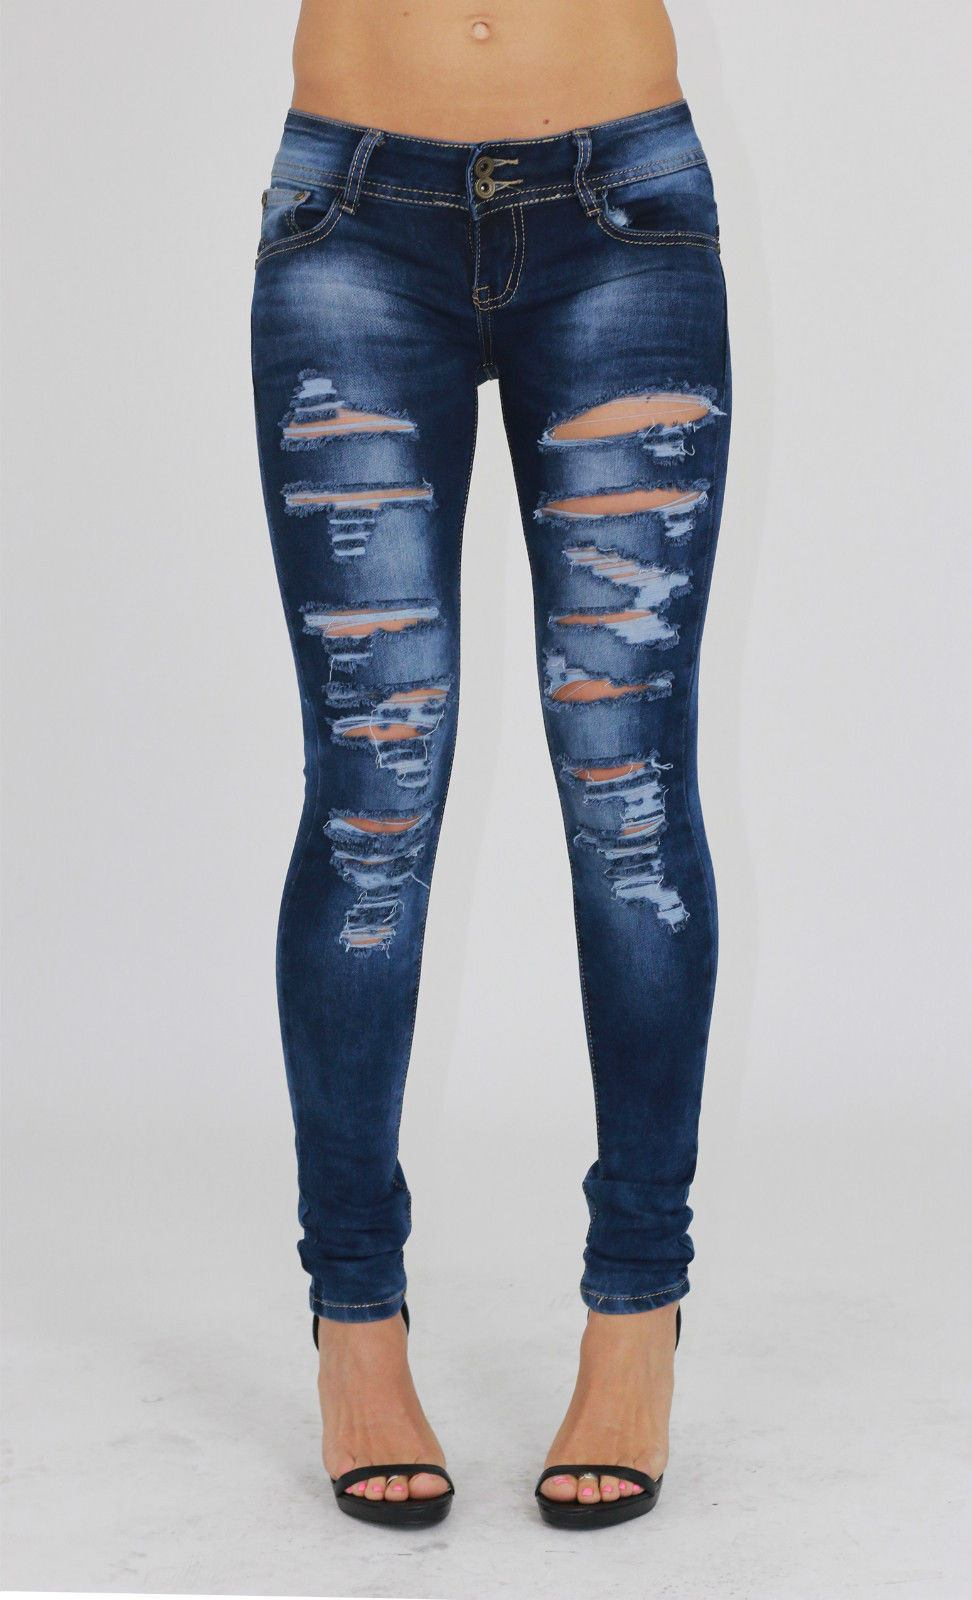 Women's Jeans. With classic styles, colourful rinses, Whether you stick to blue and black denim, Team high waisted jeans with a bright crop top and lace up sneakers for effortless retro cool, or match ripped skinny jeans with a basic tee and ballet flats for casual glam.